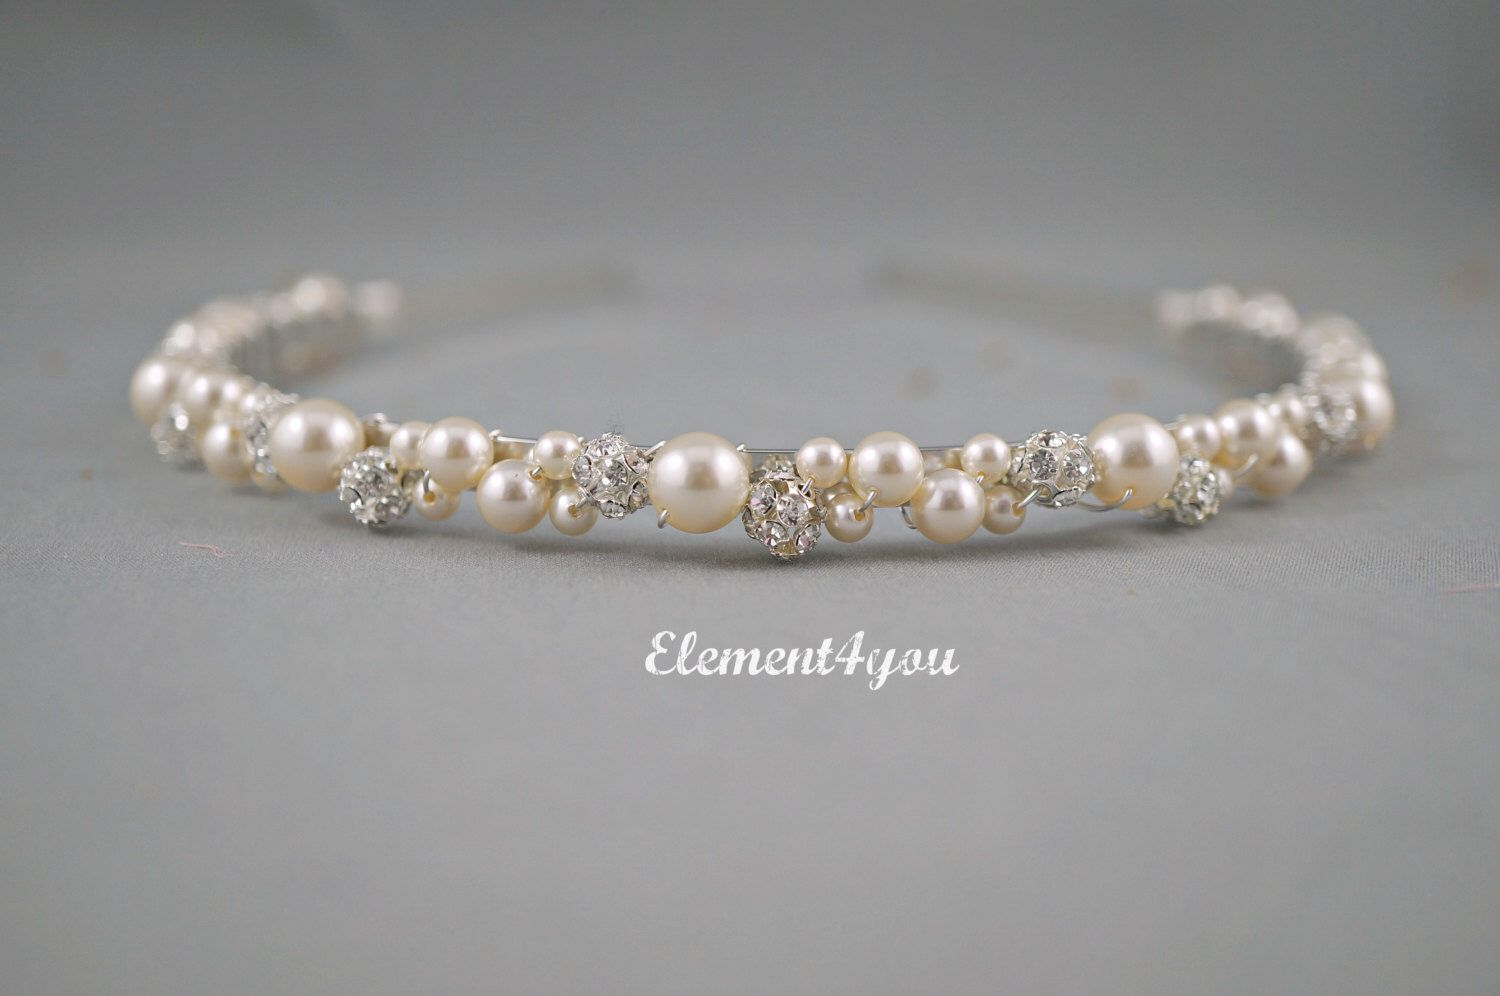 Swarovski Pearls rhinestone Balls Bridal Tiara Headband White or Ivory Beaded Silver Metal Hair Bridesmaid Wedding accessories Hair piece by Element4you on Etsy https://www.etsy.com/listing/108865058/swarovski-pearls-rhinestone-balls-bridal